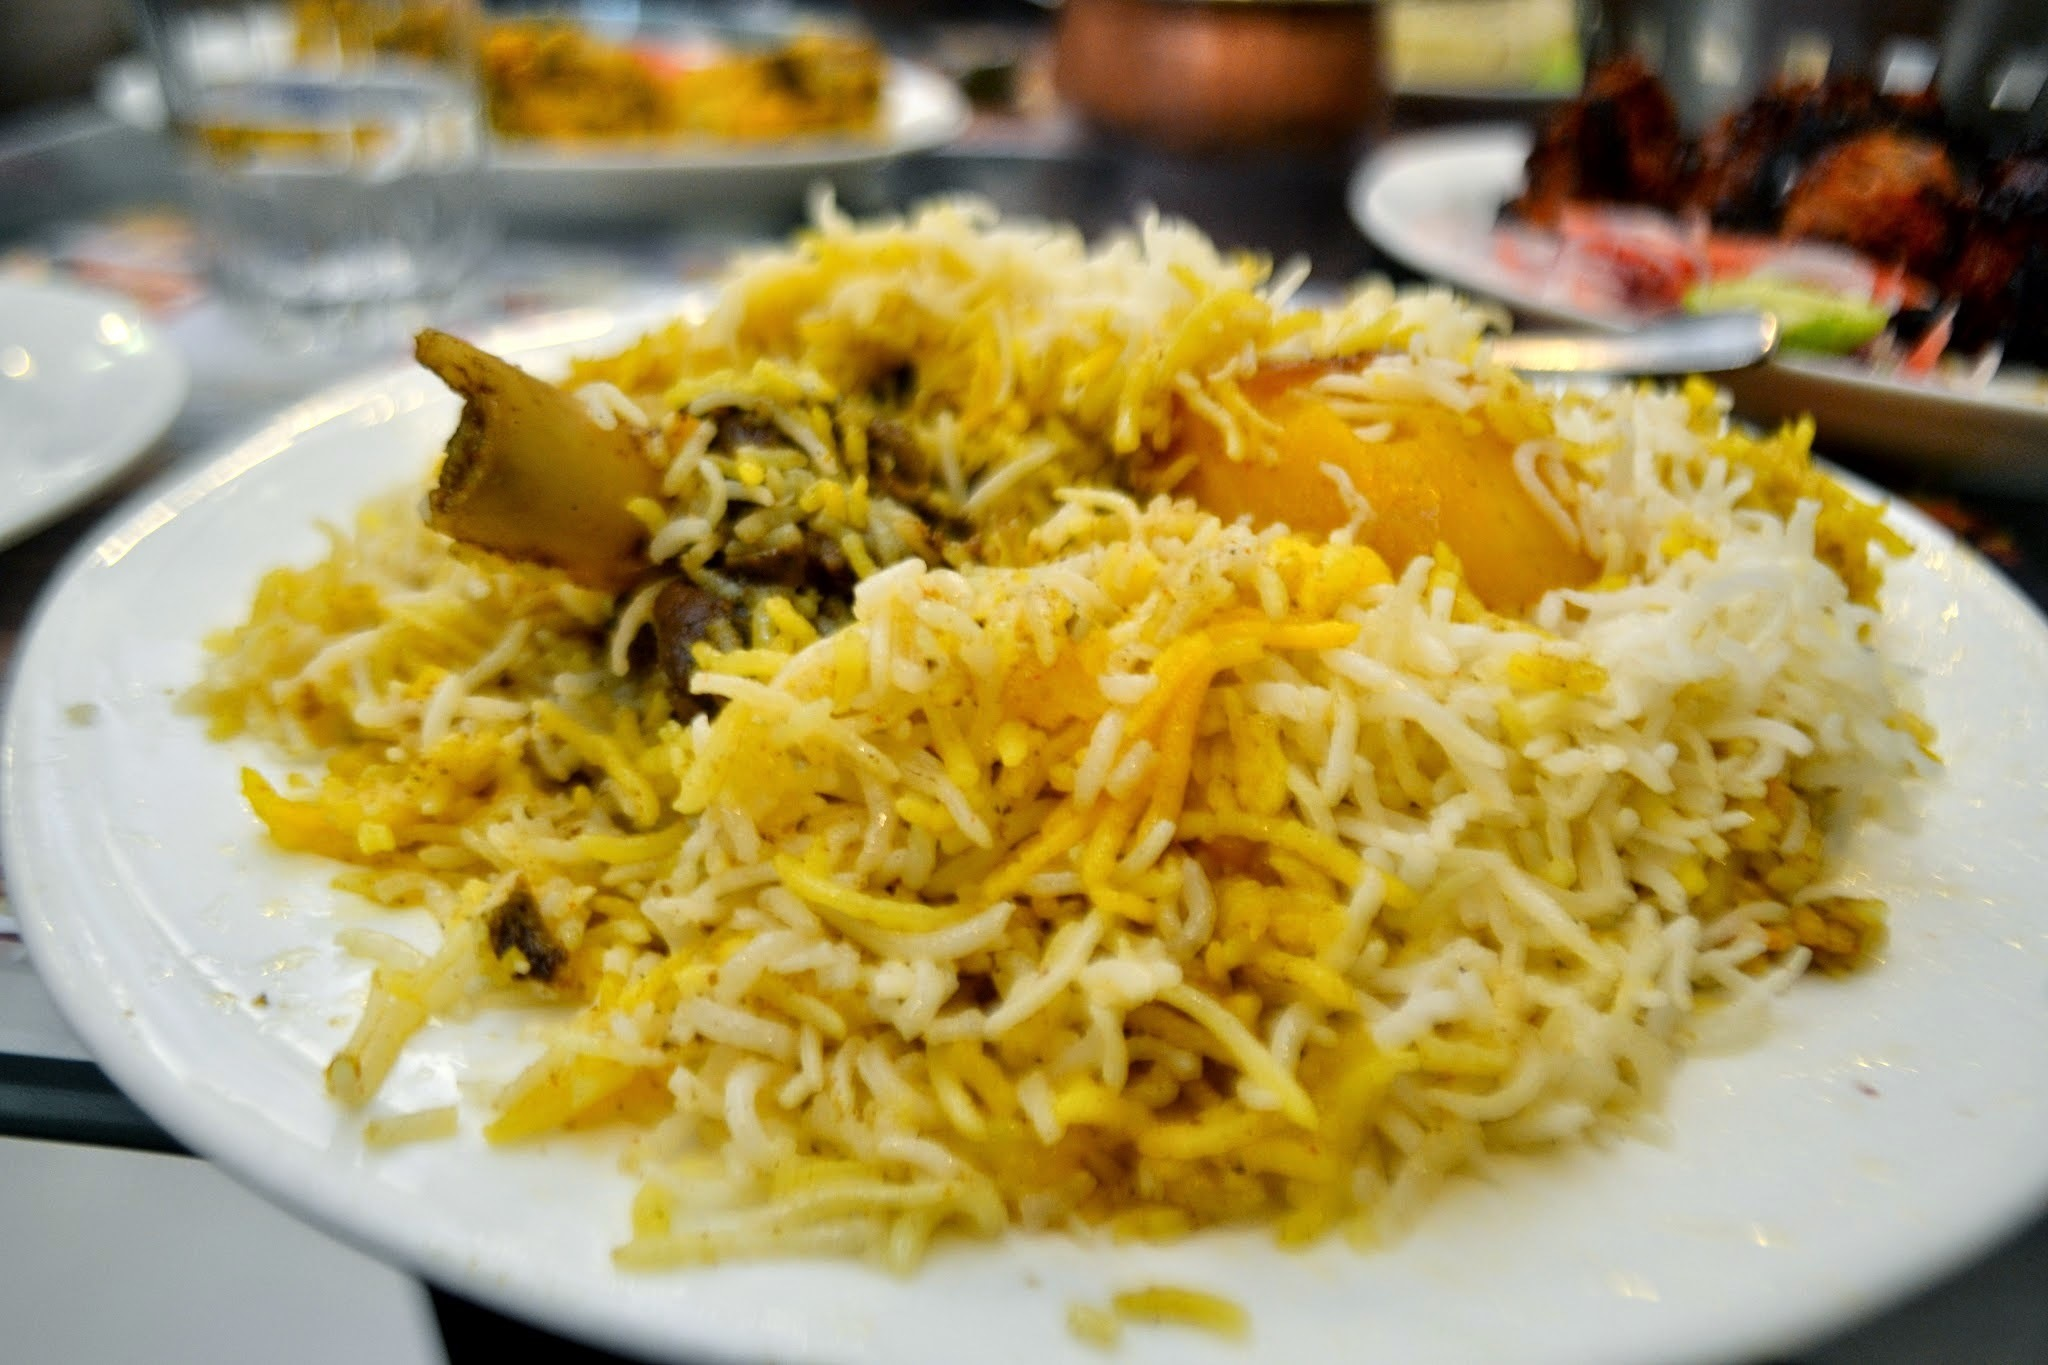 Best Kolkata Biryani: An Assimilation of the Top Places for Kolkata Biryani around the City